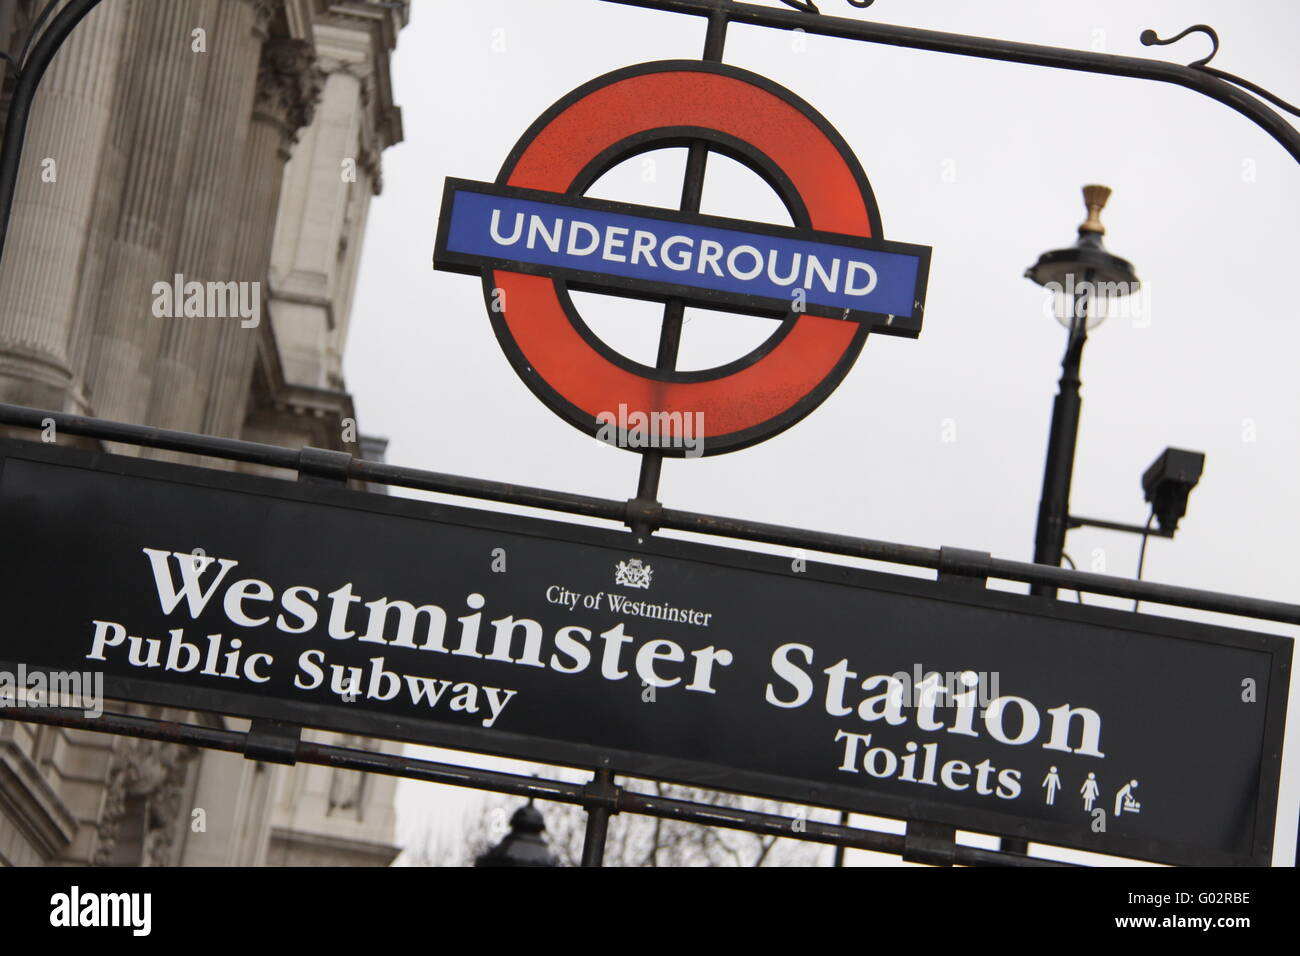 London Underground by day - Stock Image